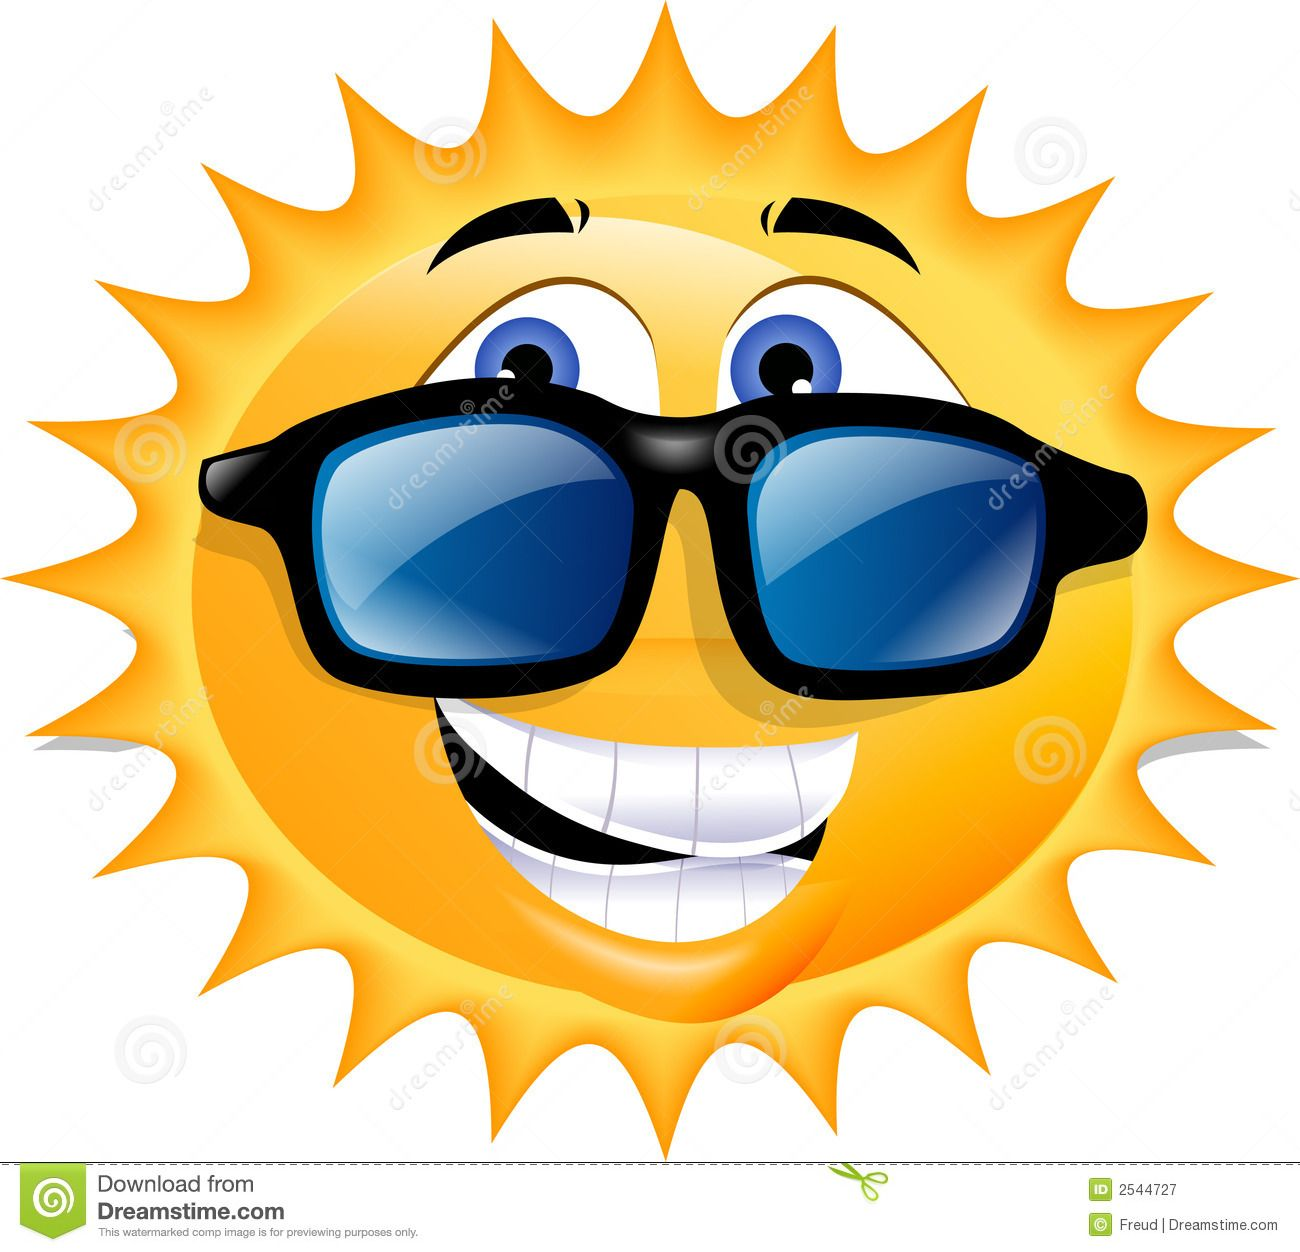 Cute sun with sunglasses clipart clipart panda free clipart cute sun with sunglasses clipart clipart panda free clipart images sciox Image collections